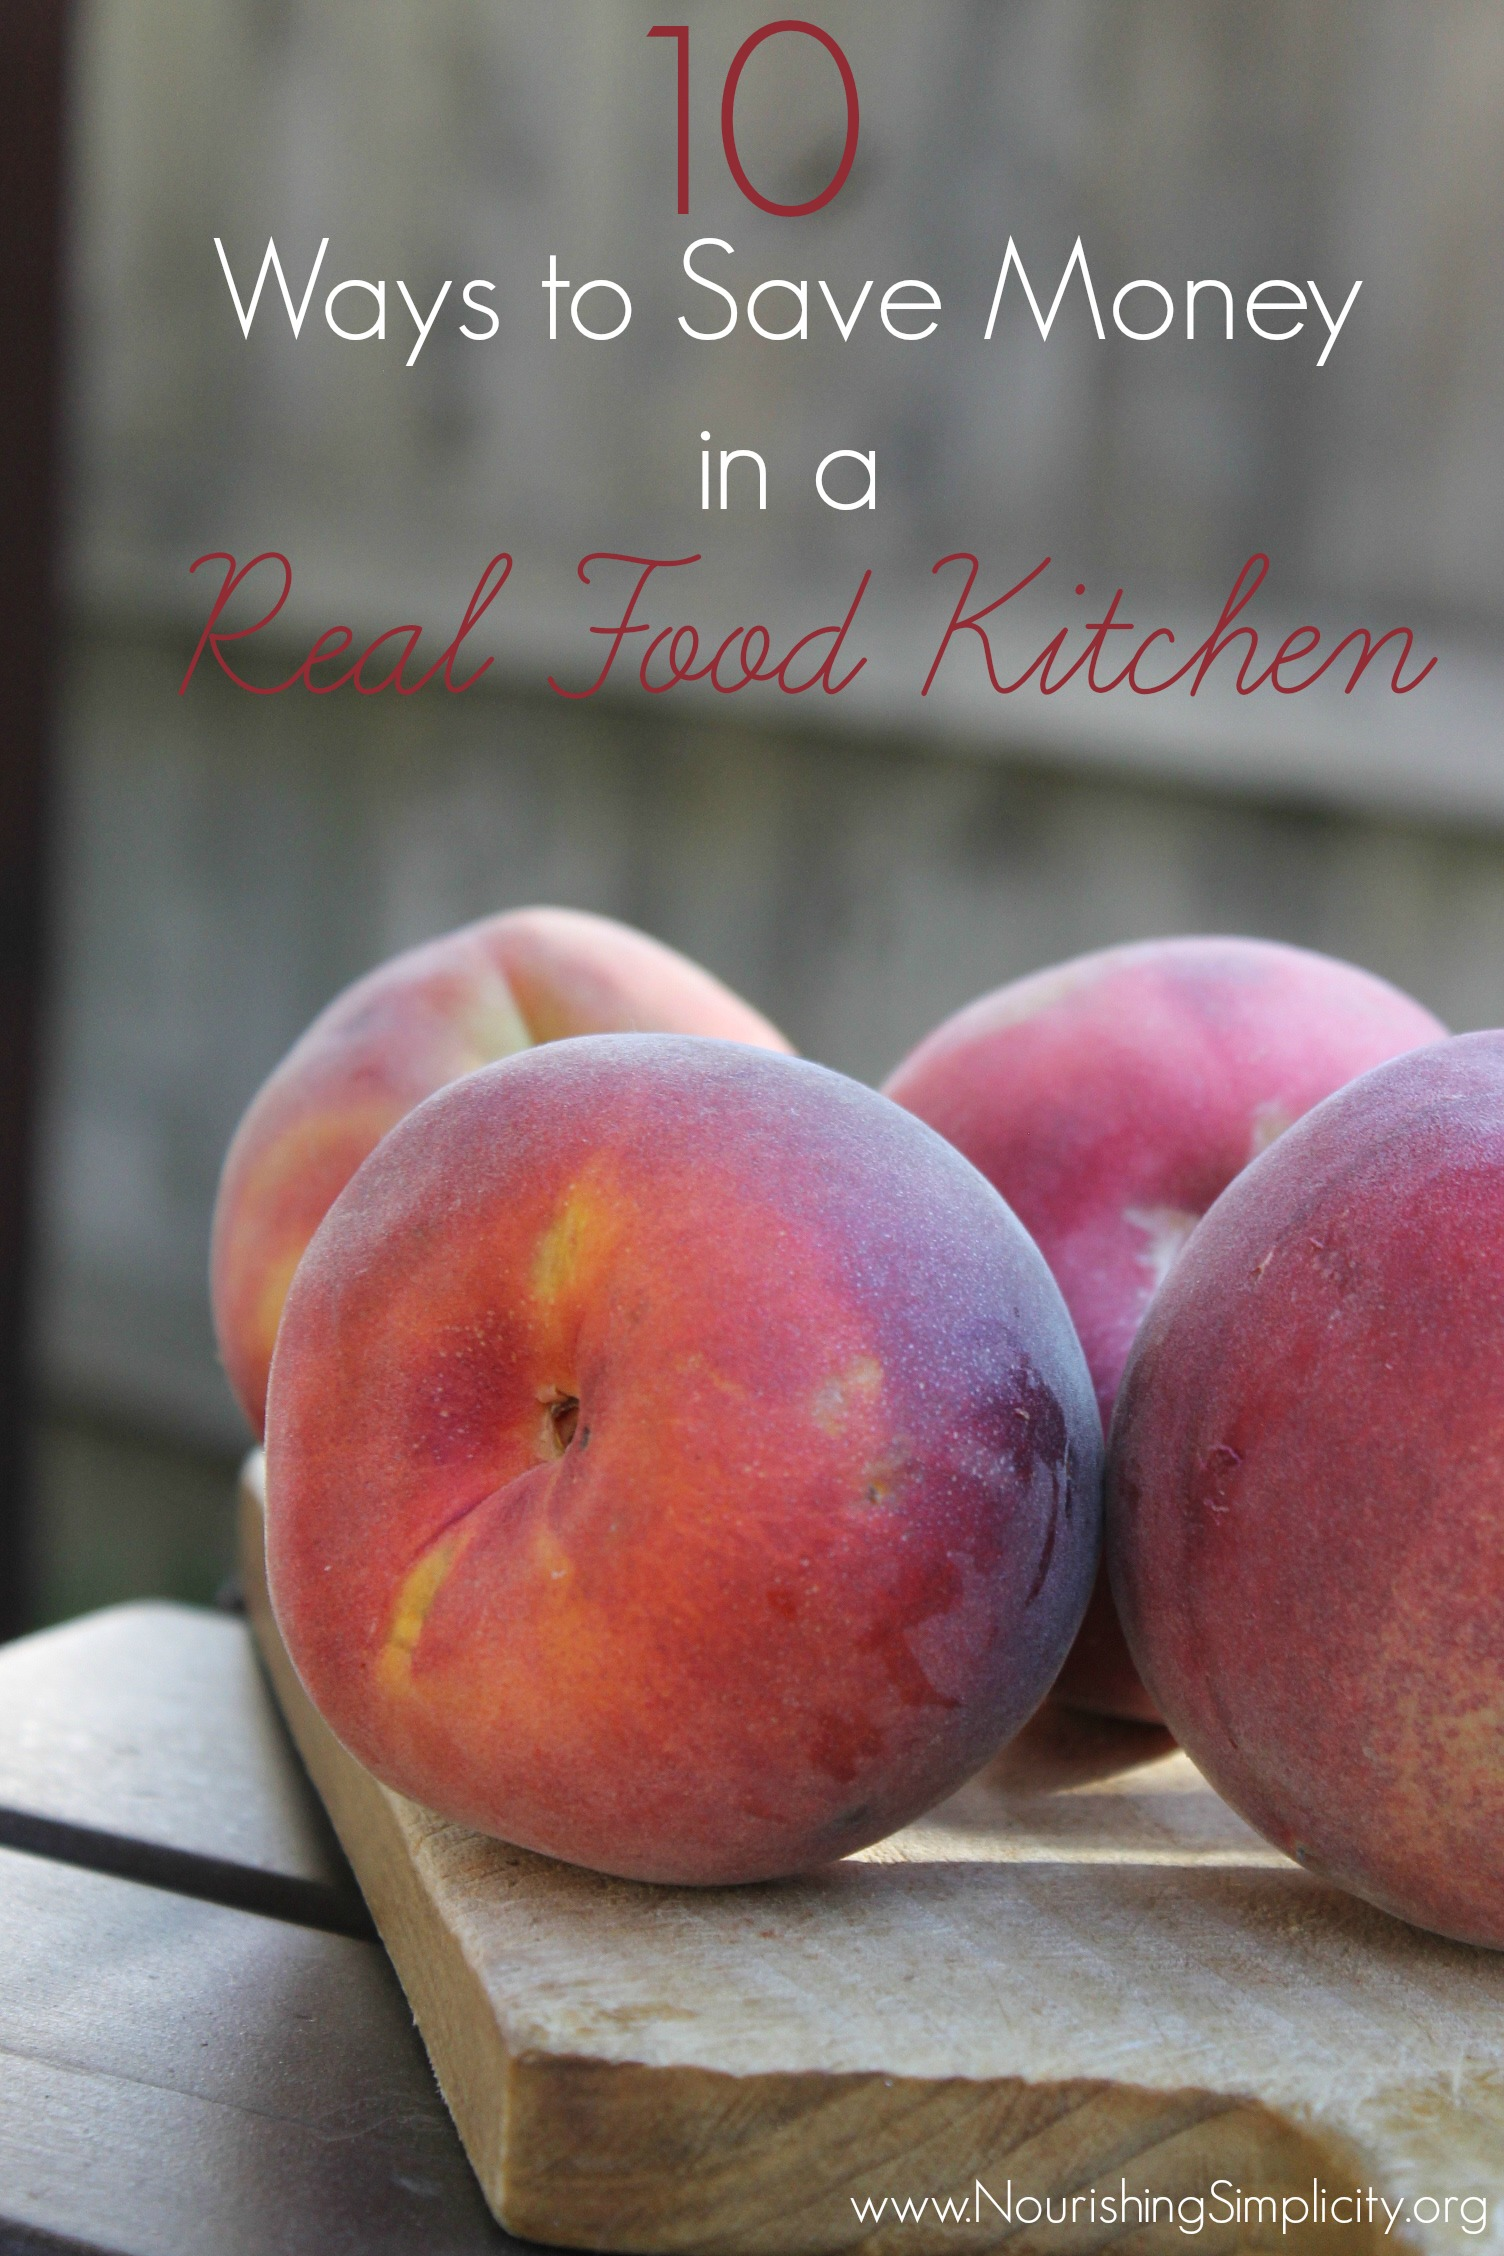 10 Ways to Save Money in a Real Food Kitchen